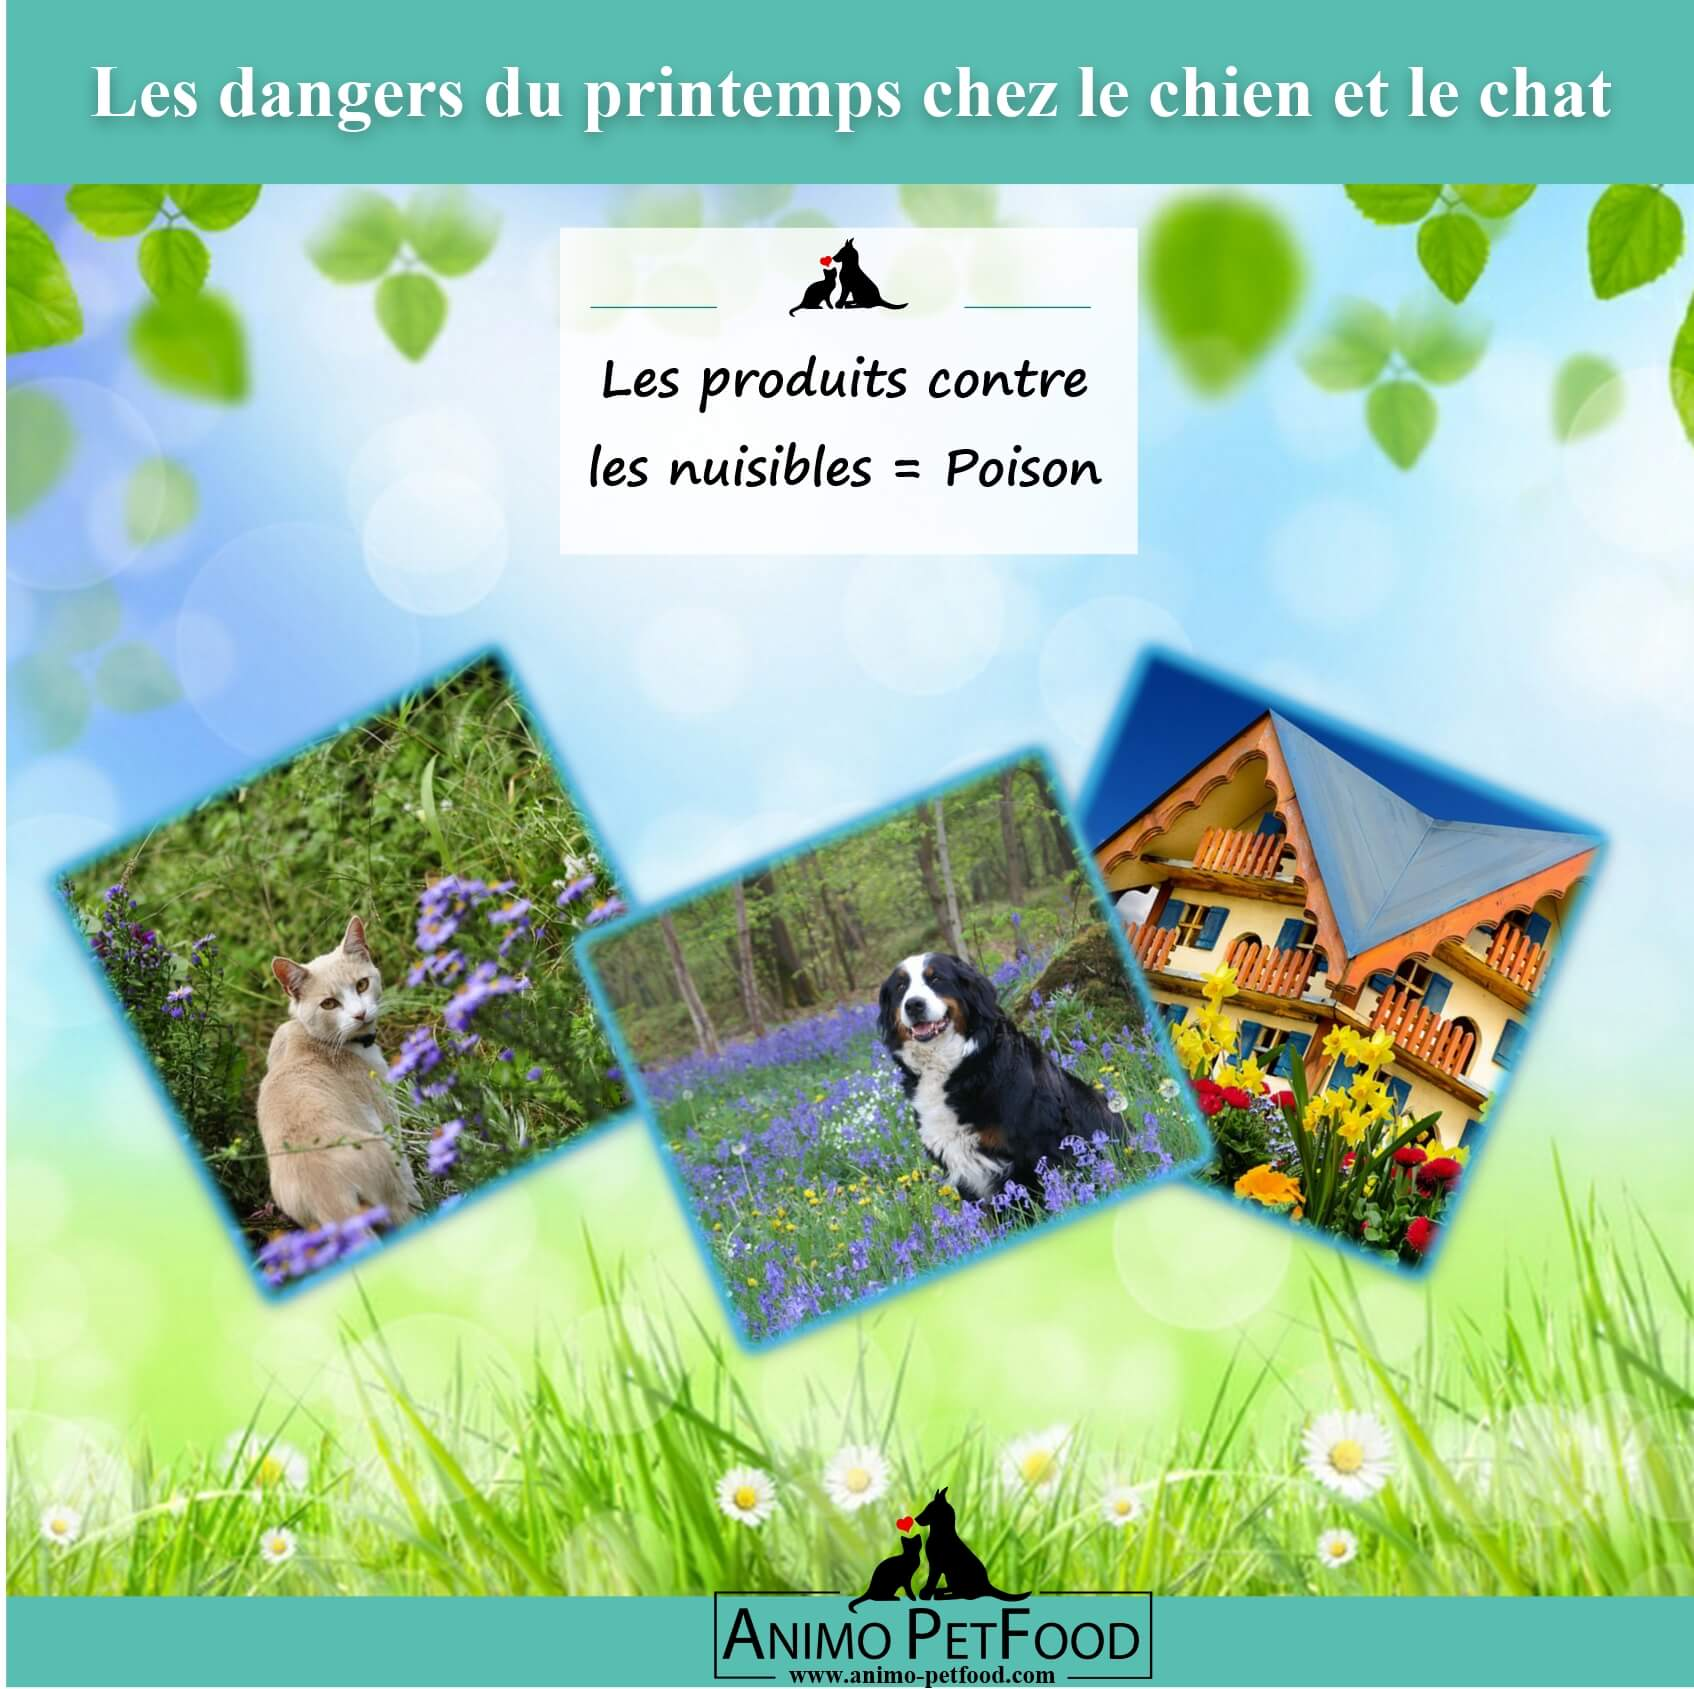 dangers du printemps chez le chien et le chat-raticides-poison chien-poison chat